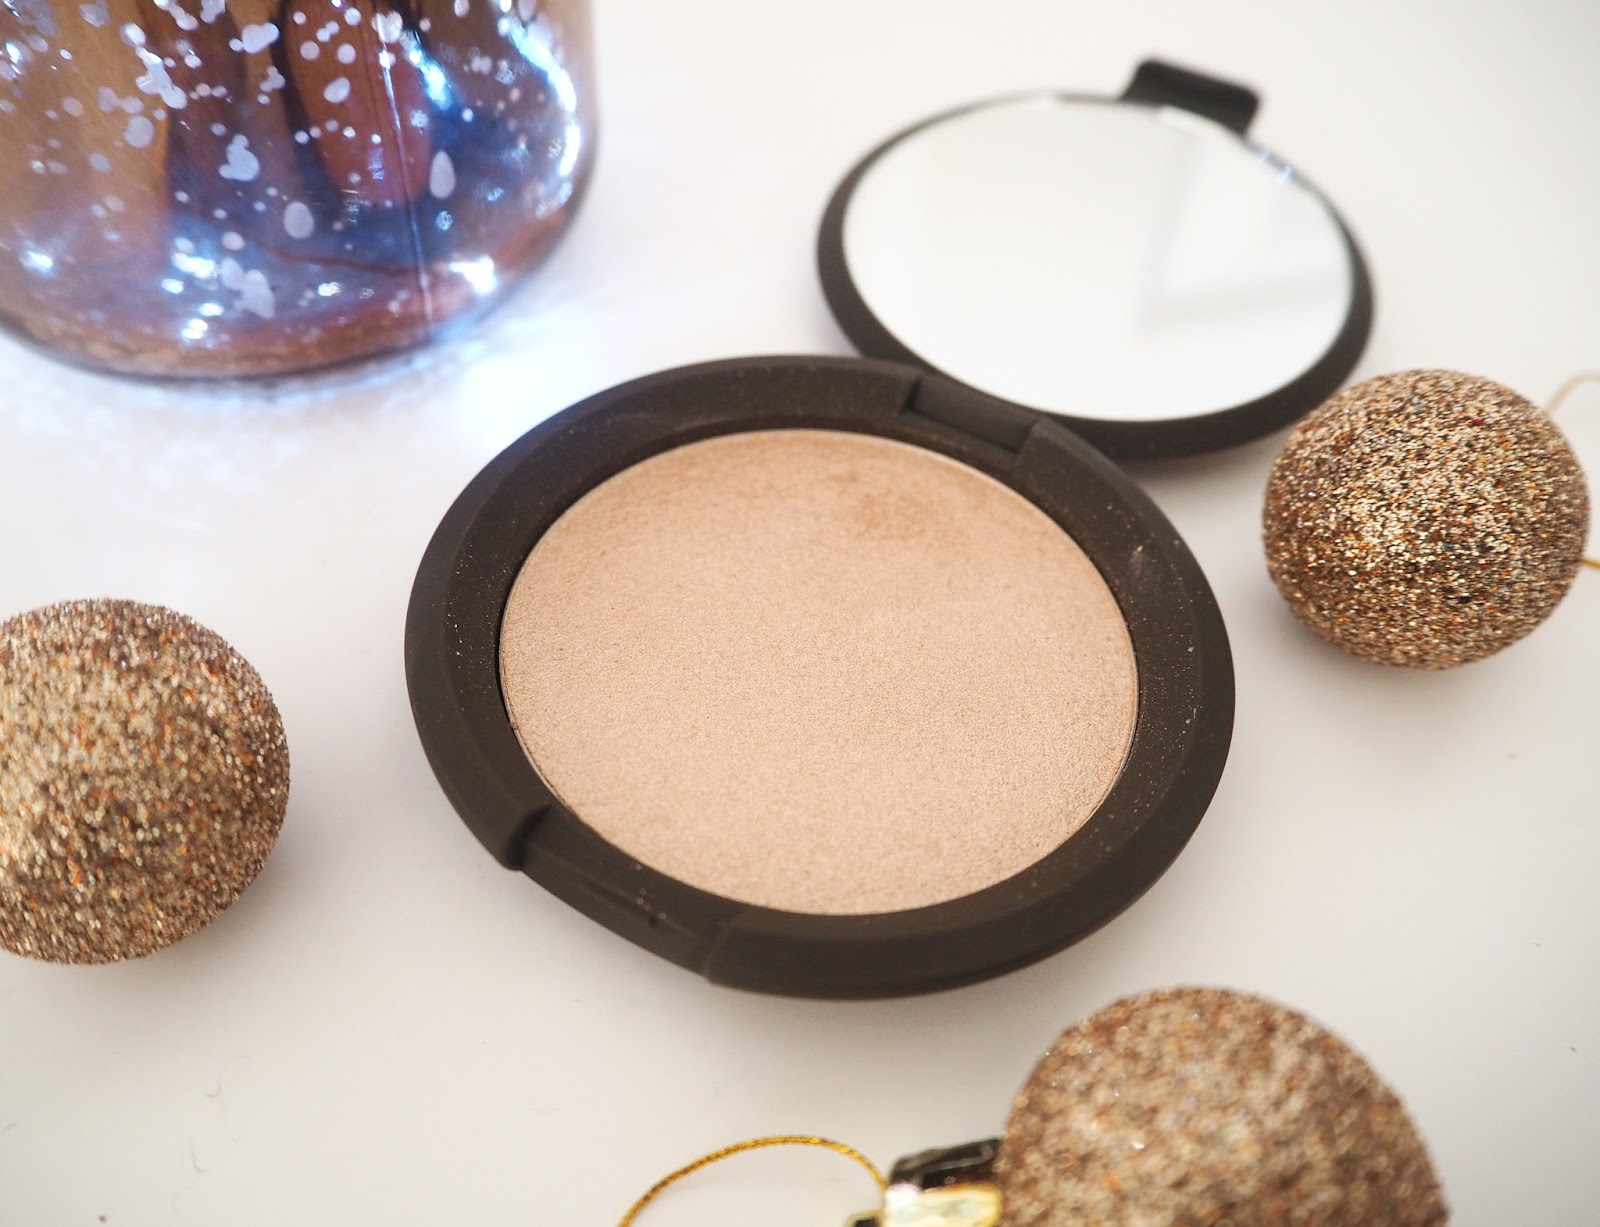 Loves List: December, Katie Kirk Loves, Becca Opal Highlighter, Becca Cosmetics, Becca Shimmering Skin Perfector, Make Up Blogger, Favourites, UK Blogger, Beauty Blogger, Lifestyle Blogger, Fashion Blogger,